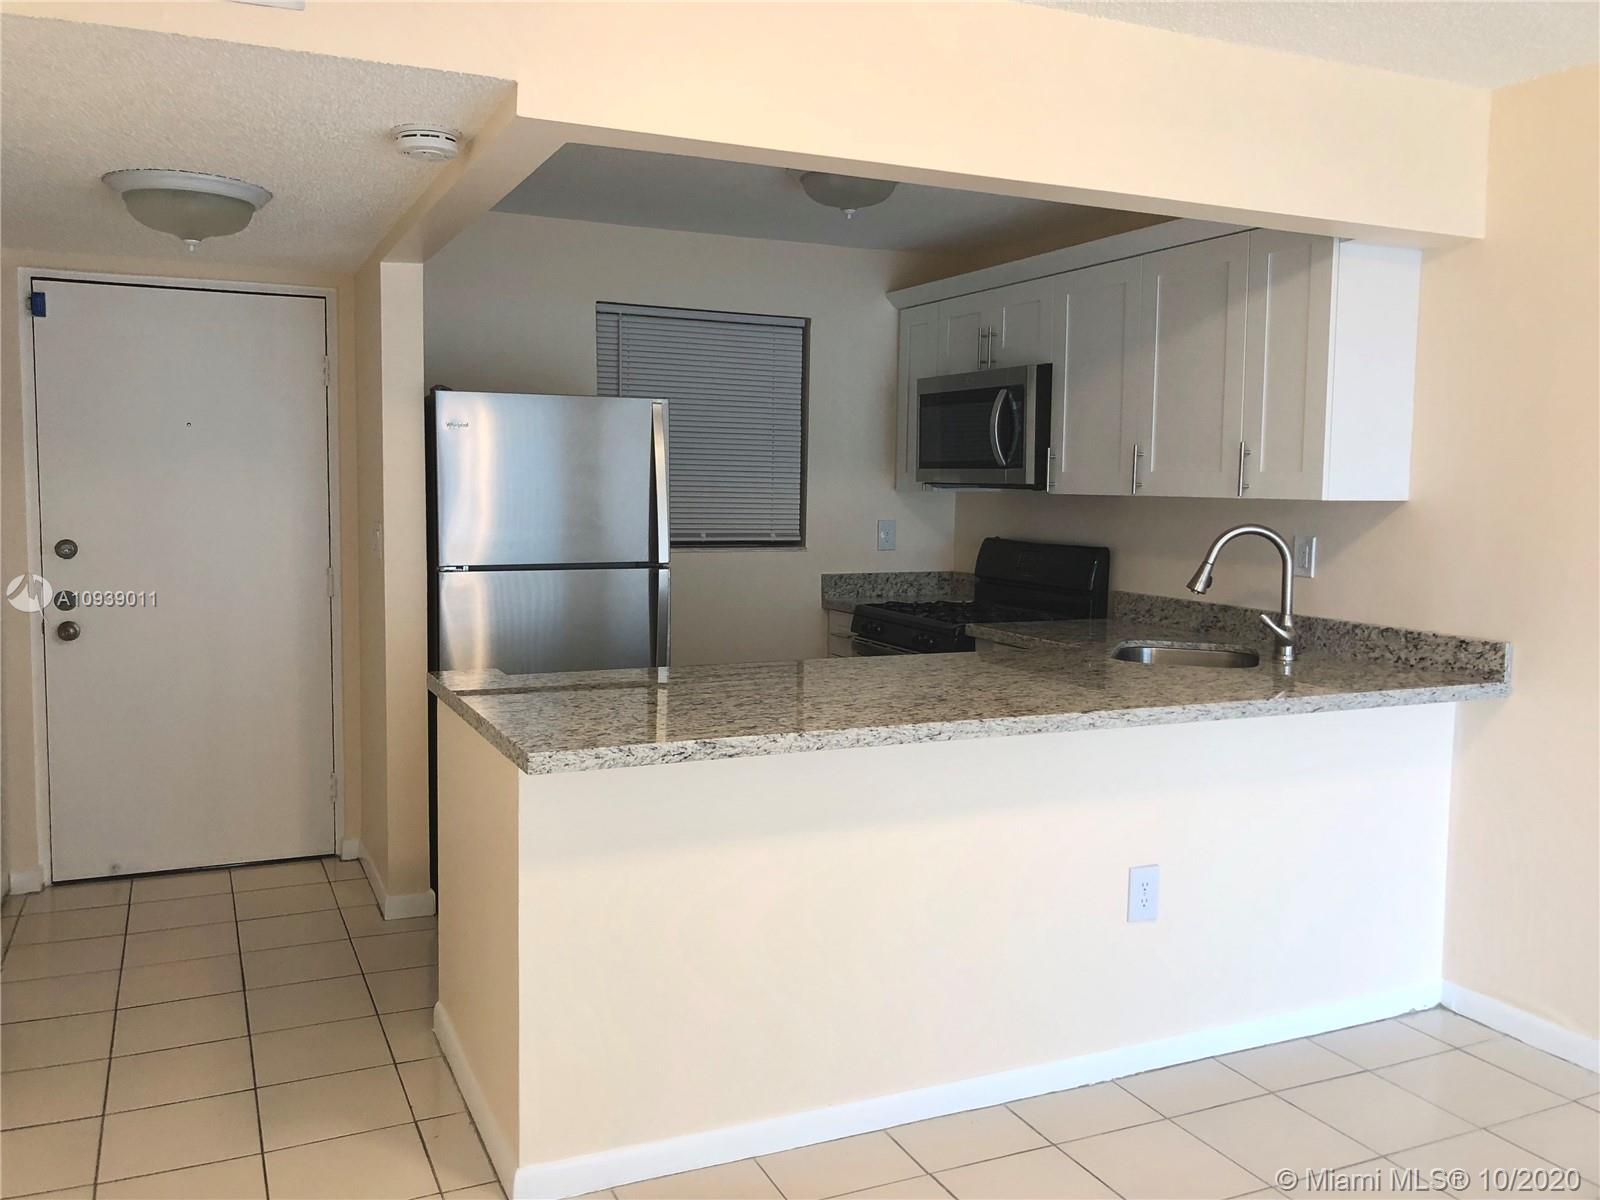 13000 SW 92nd Ave # B108, Miami, Florida 33176, 1 Bedroom Bedrooms, ,1 BathroomBathrooms,Residential,For Sale,13000 SW 92nd Ave # B108,A10939011